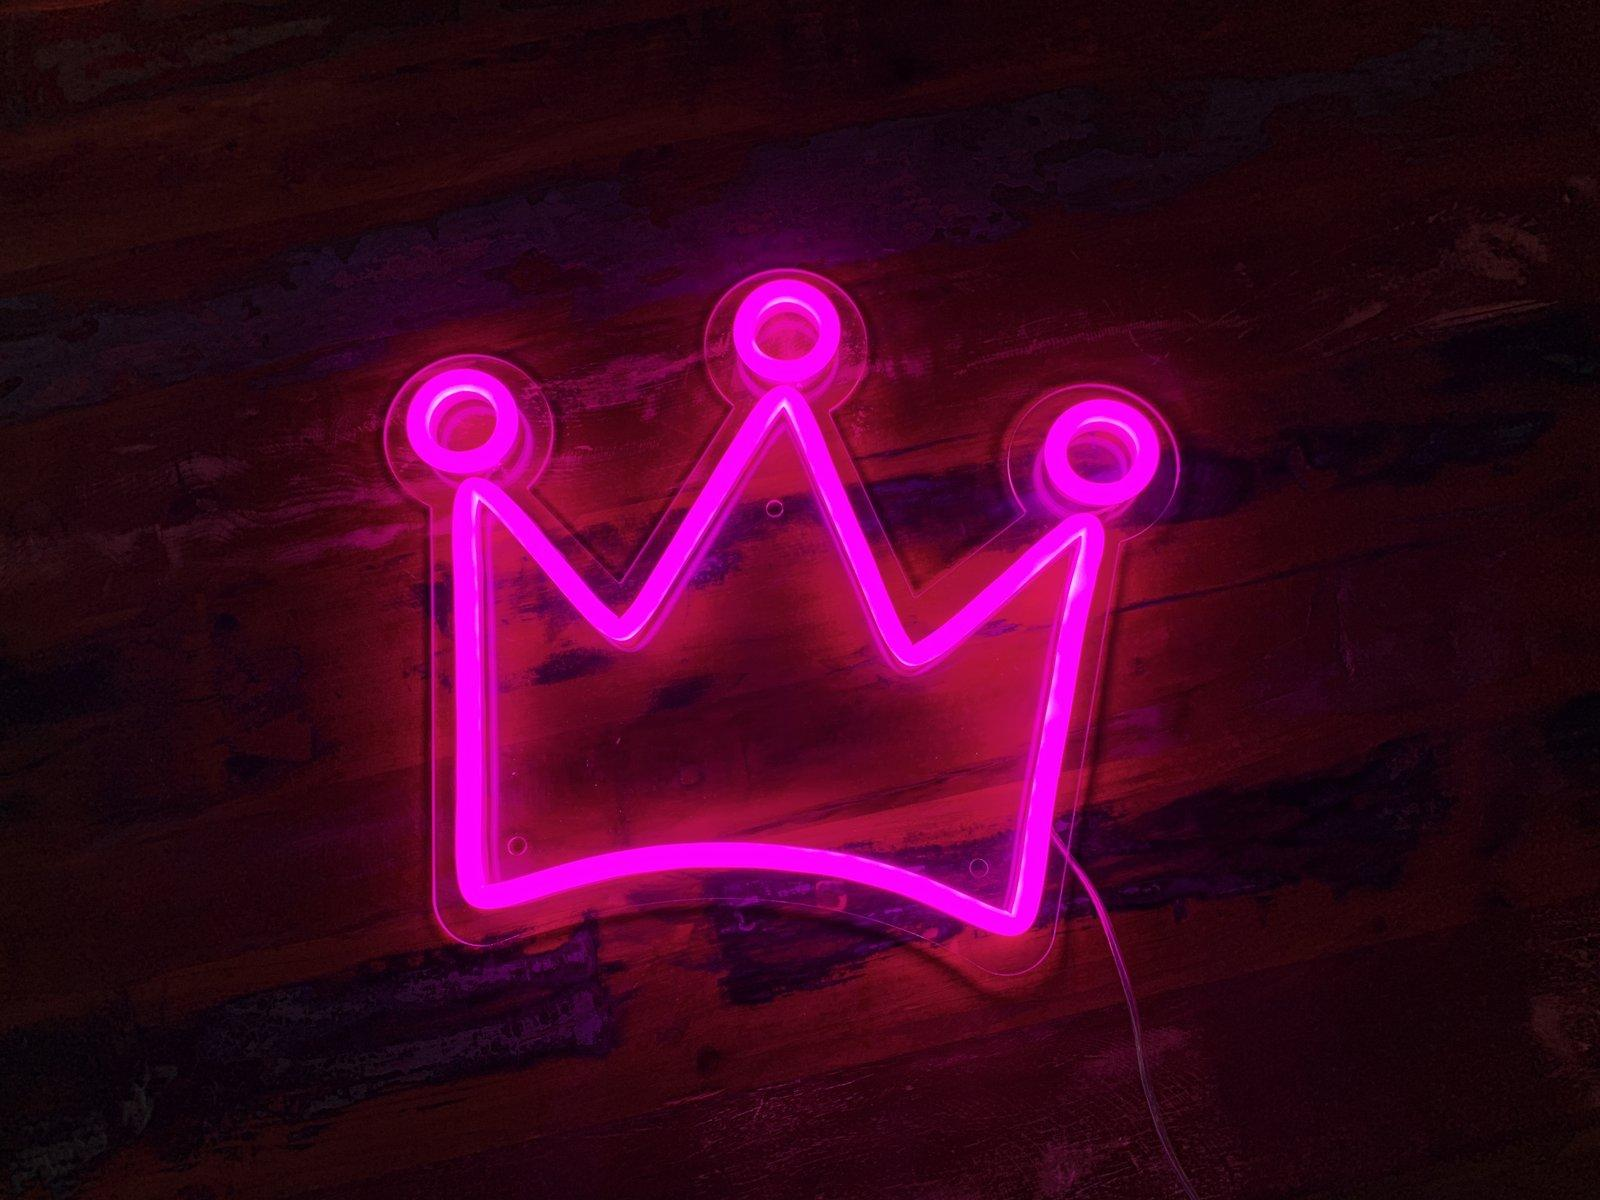 Neon Pink Aesthetic Wallpapers Top Free Neon Pink Aesthetic Backgrounds Wallpaperaccess Design hunger is a blog created to offer a large design trendy selection inspired by pastel colours. neon pink aesthetic wallpapers top